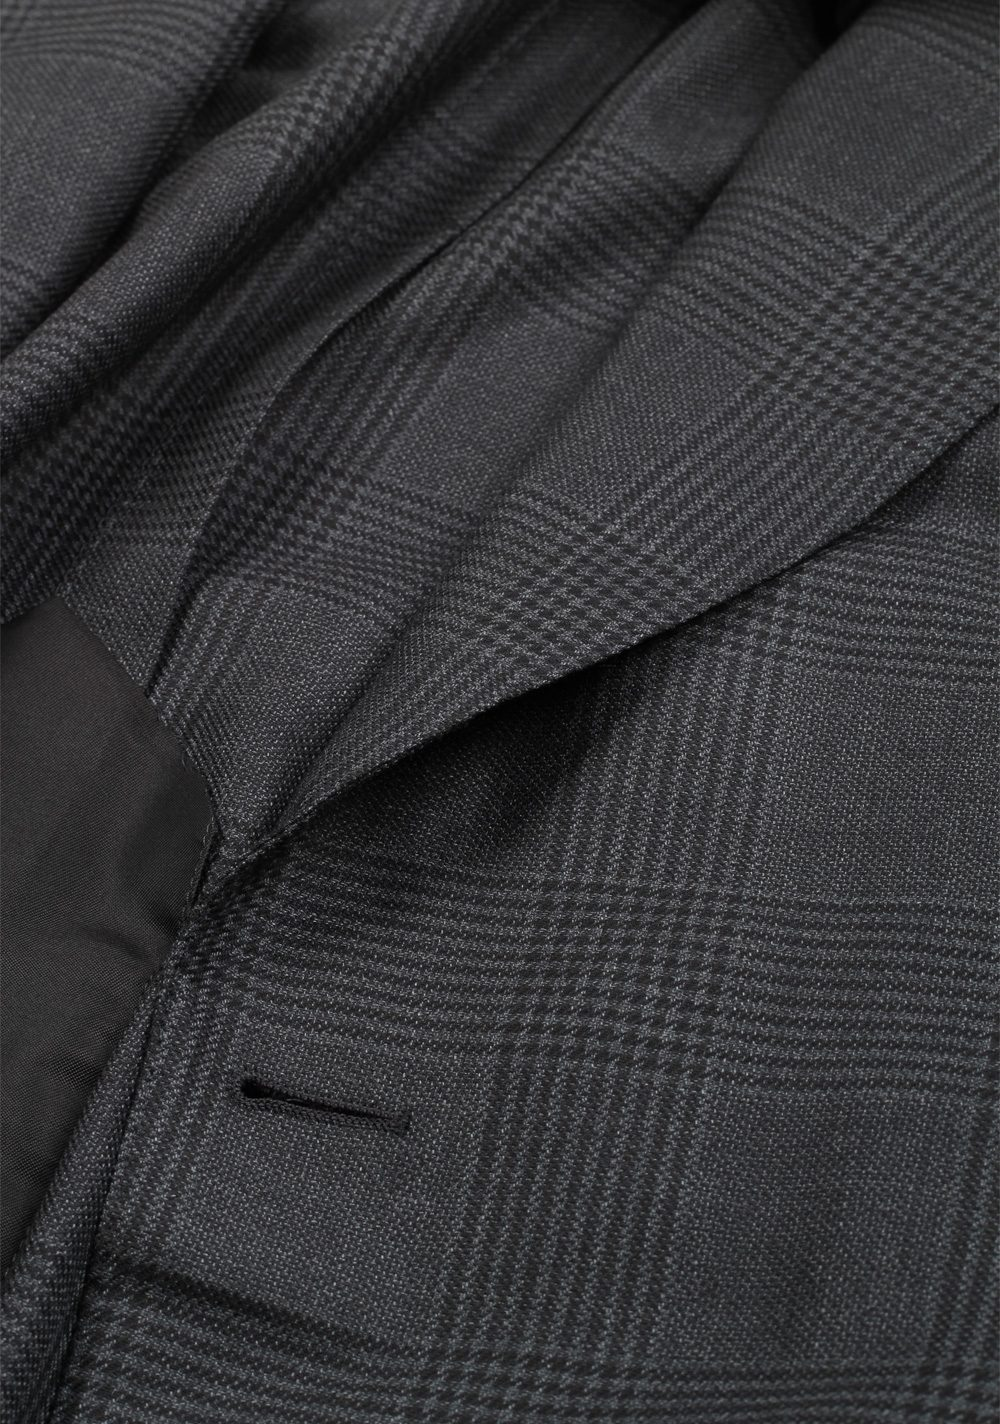 TOM FORD Shelton Checked Blue Sport Coat Size 48 / 38R U.S. In Wool Silk   Costume Limité